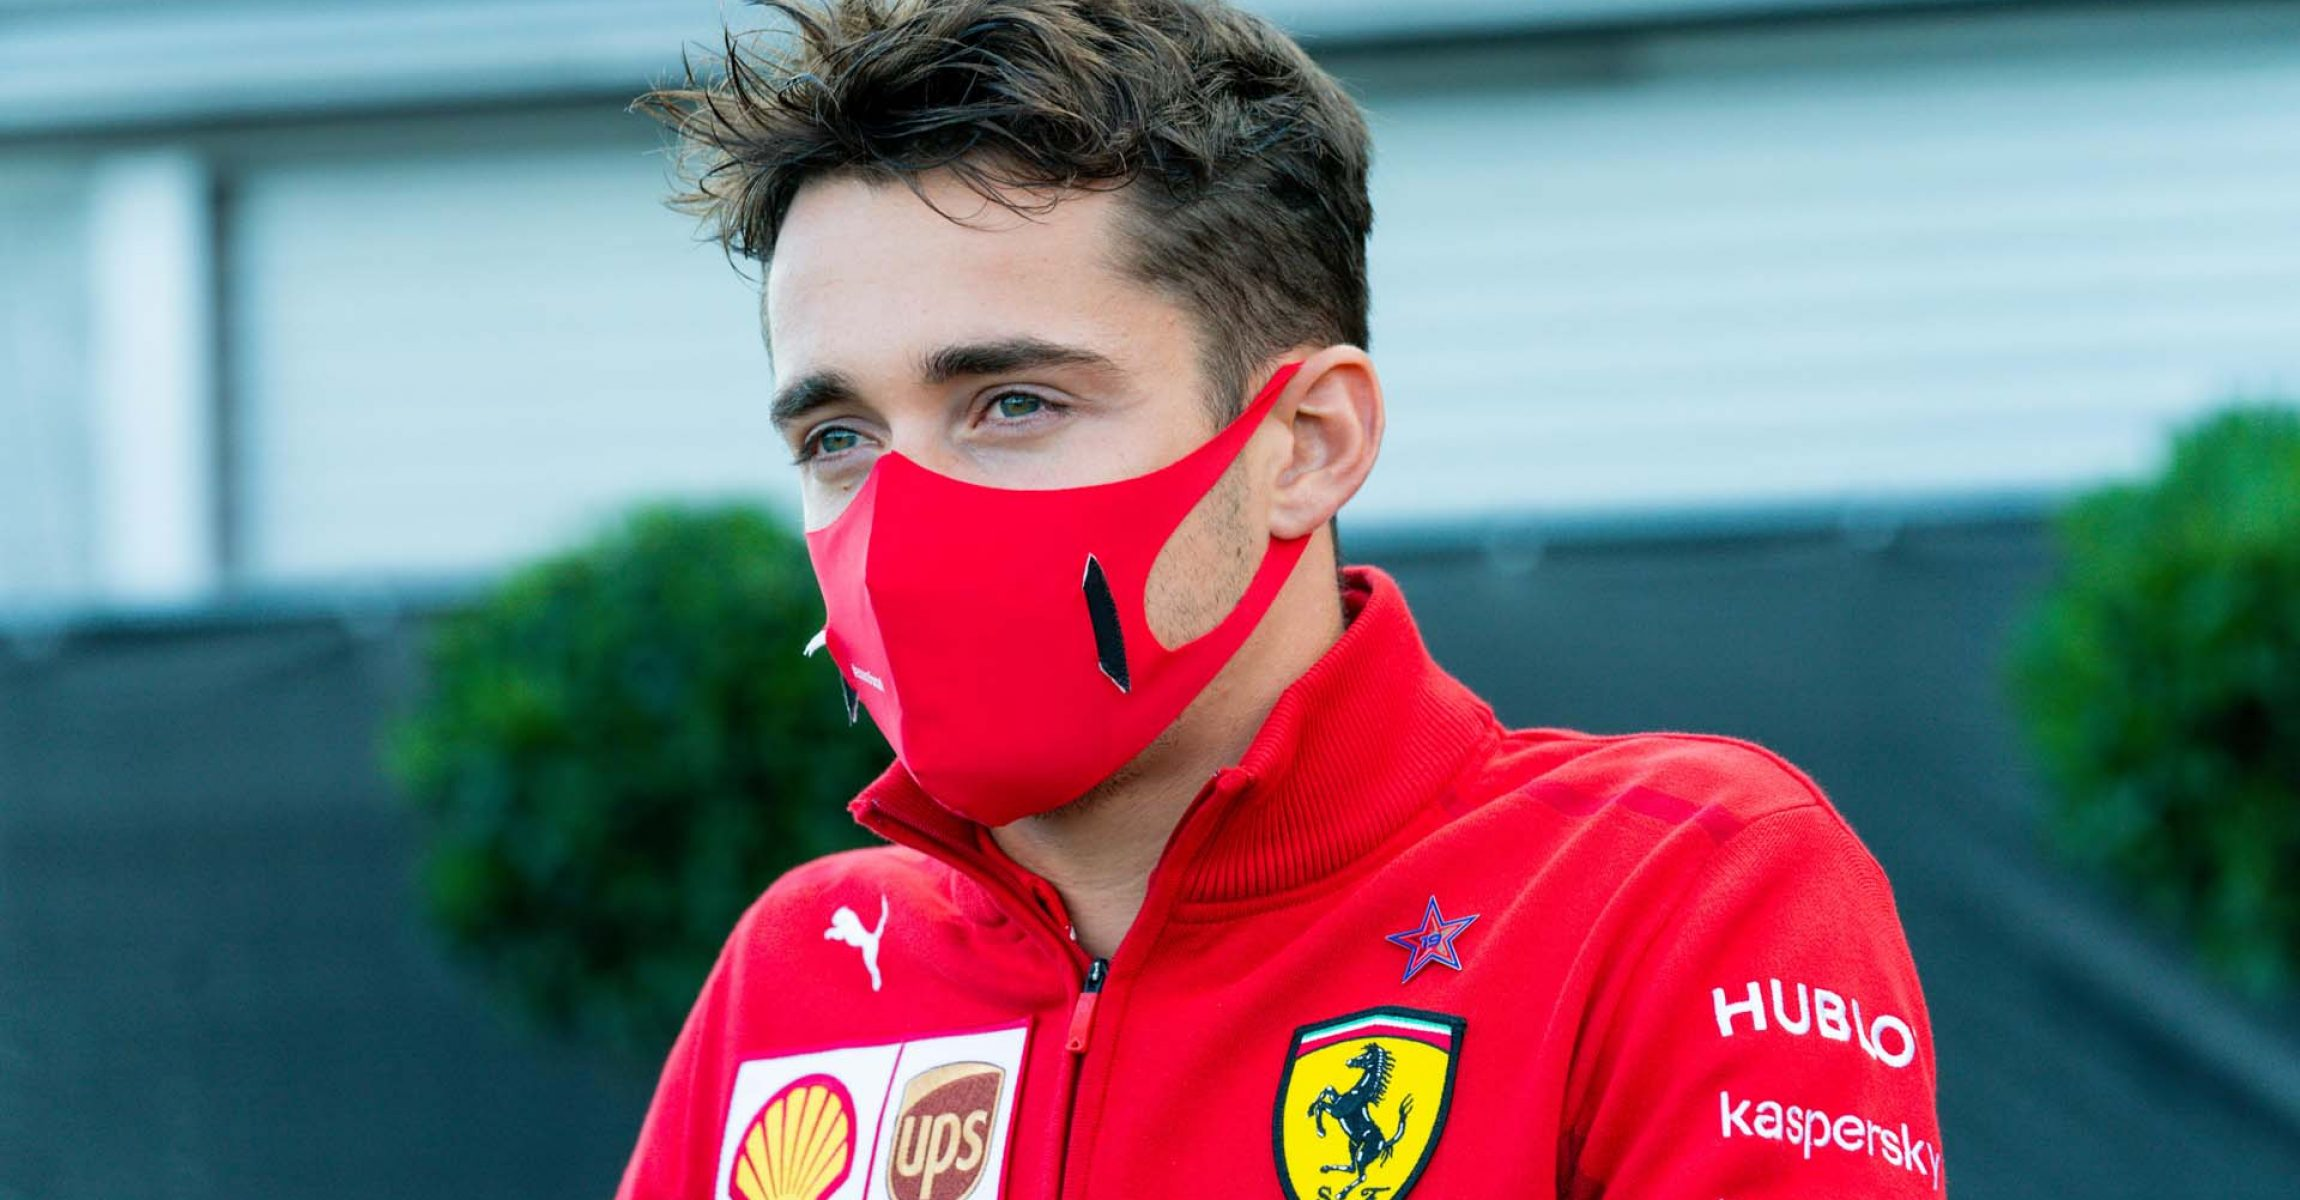 GP BELGIO F1/2020 -  GIOVEDÌ 27/08/2020   credit: @Scuderia Ferrari Press Office Charles Leclerc